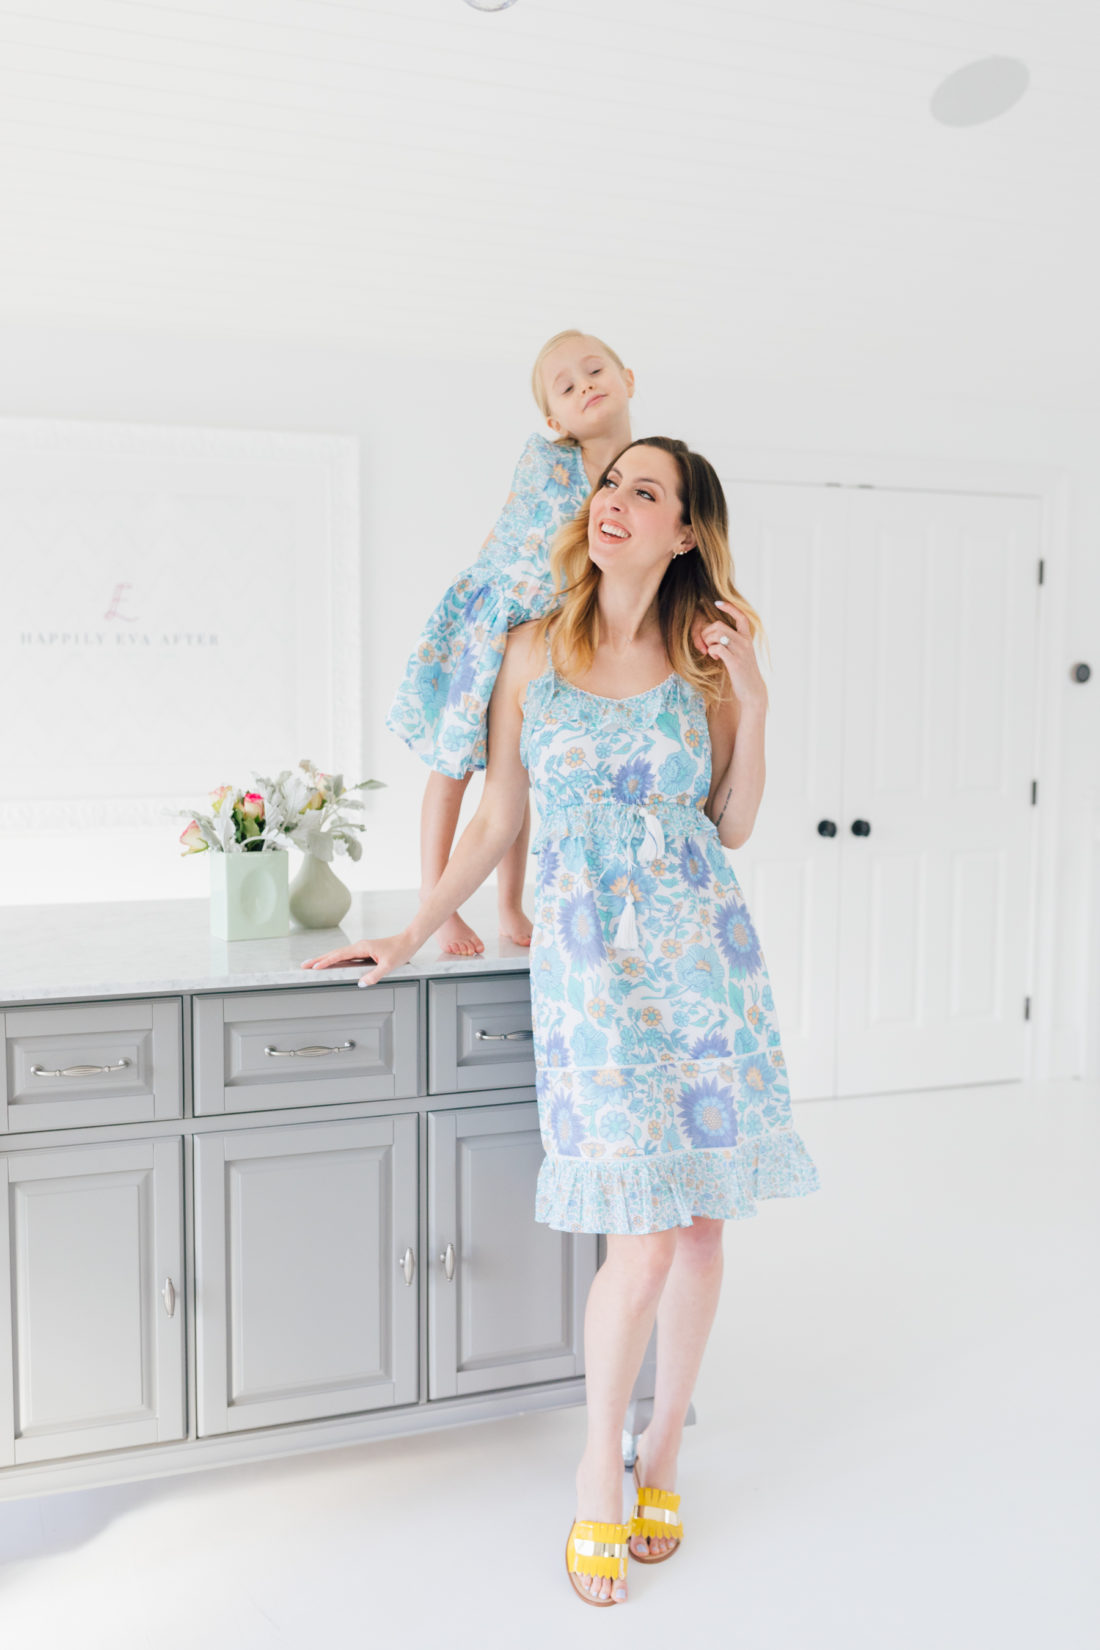 Eva Amurri Martino stands in a floral ruffle dress in the studio of her connecticut home with four year old daughter Marlowe